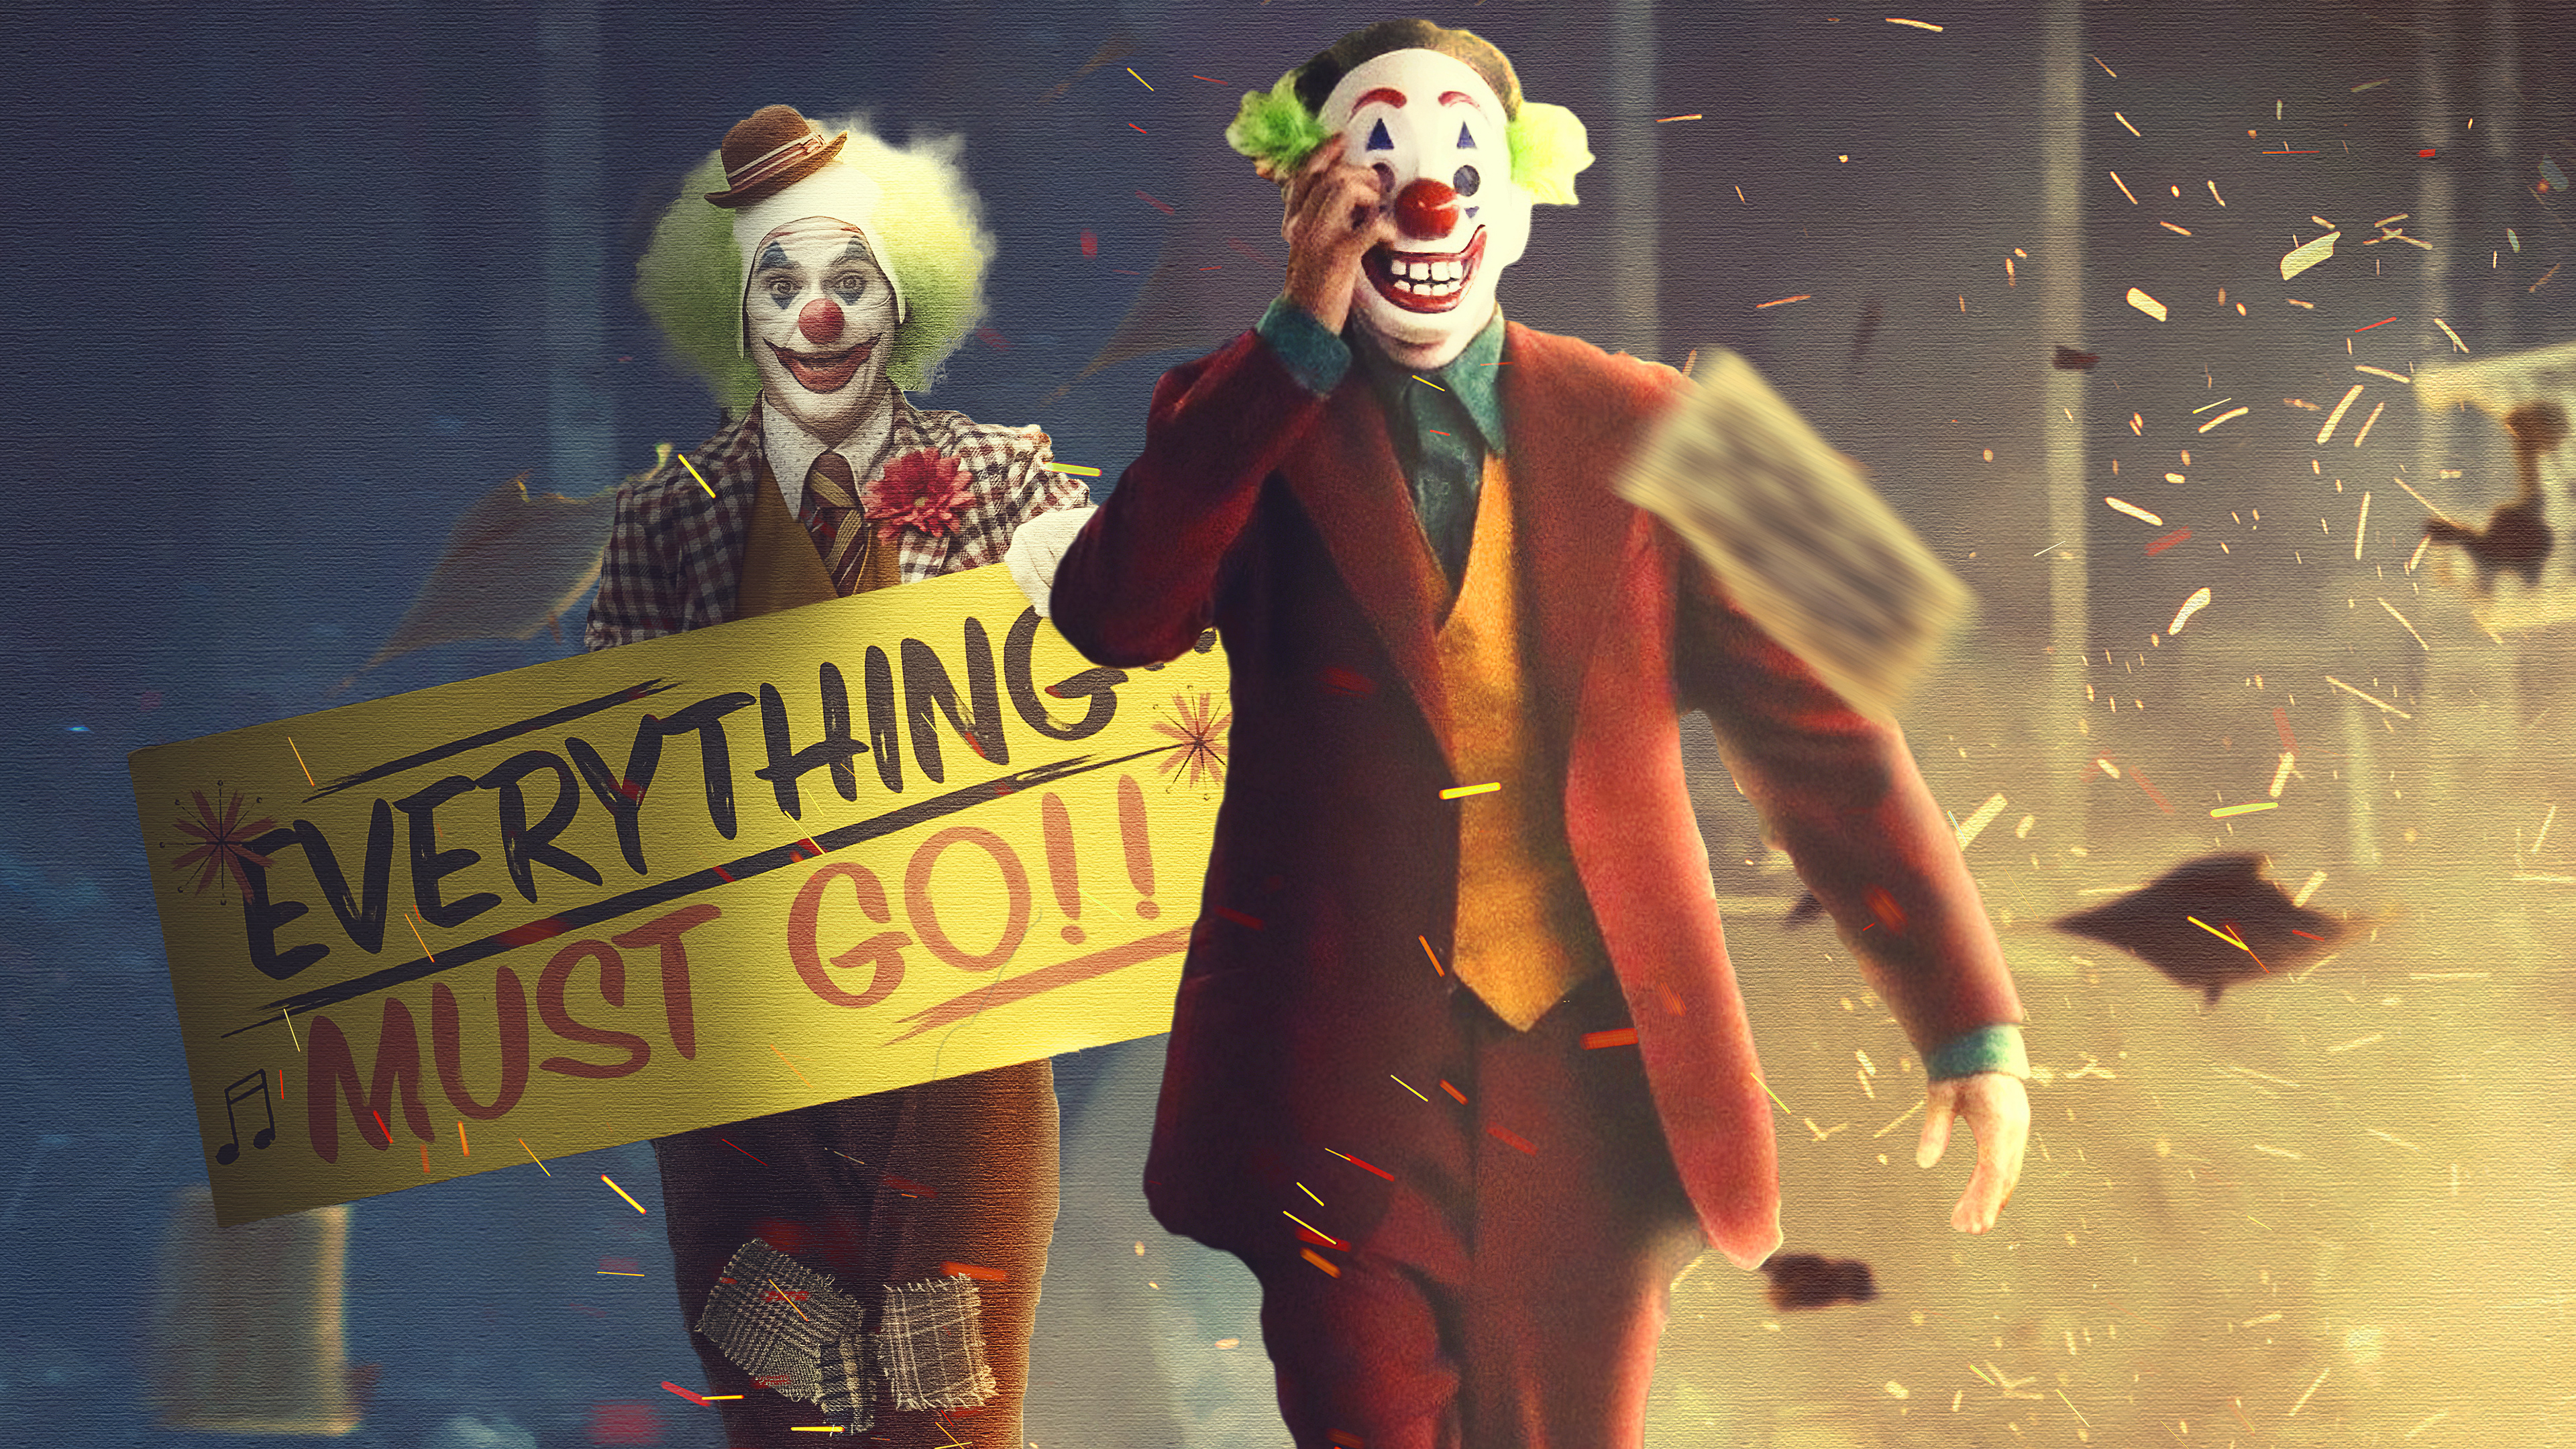 everything must go 1572368986 - Everything Must Go - superheroes wallpapers, joker wallpapers, hd-wallpapers, digital art wallpapers, behance wallpapers, artwork wallpapers, artist wallpapers, 4k-wallpapers